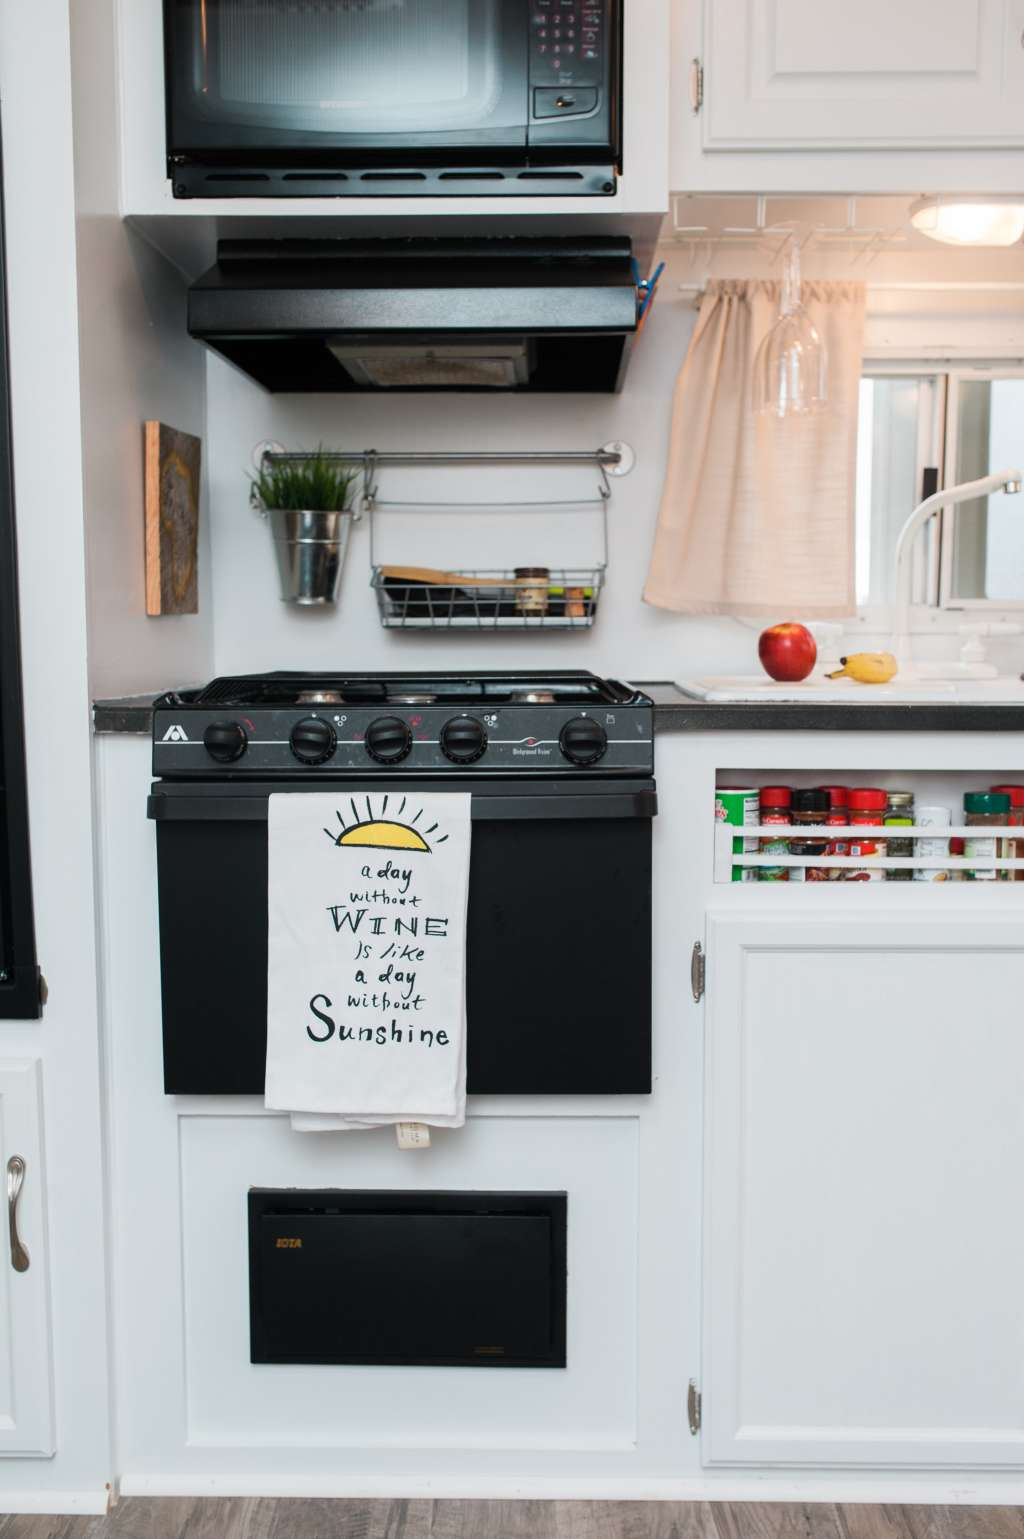 Small Space Organization: How to Clear Out Kitchen Cabinets